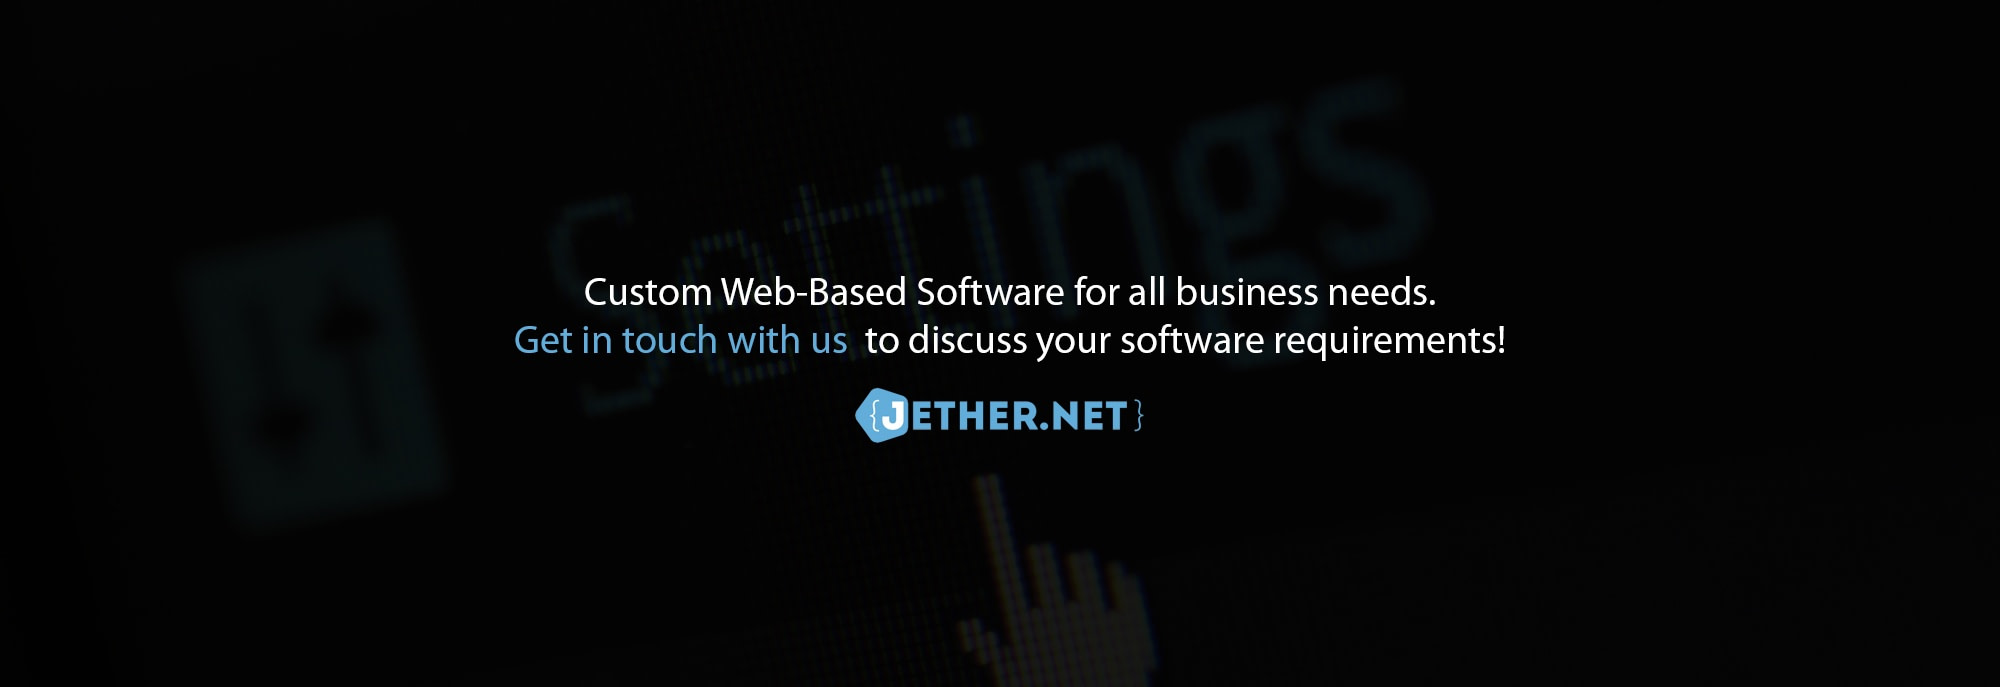 Custom Web-Based Software in Philippines